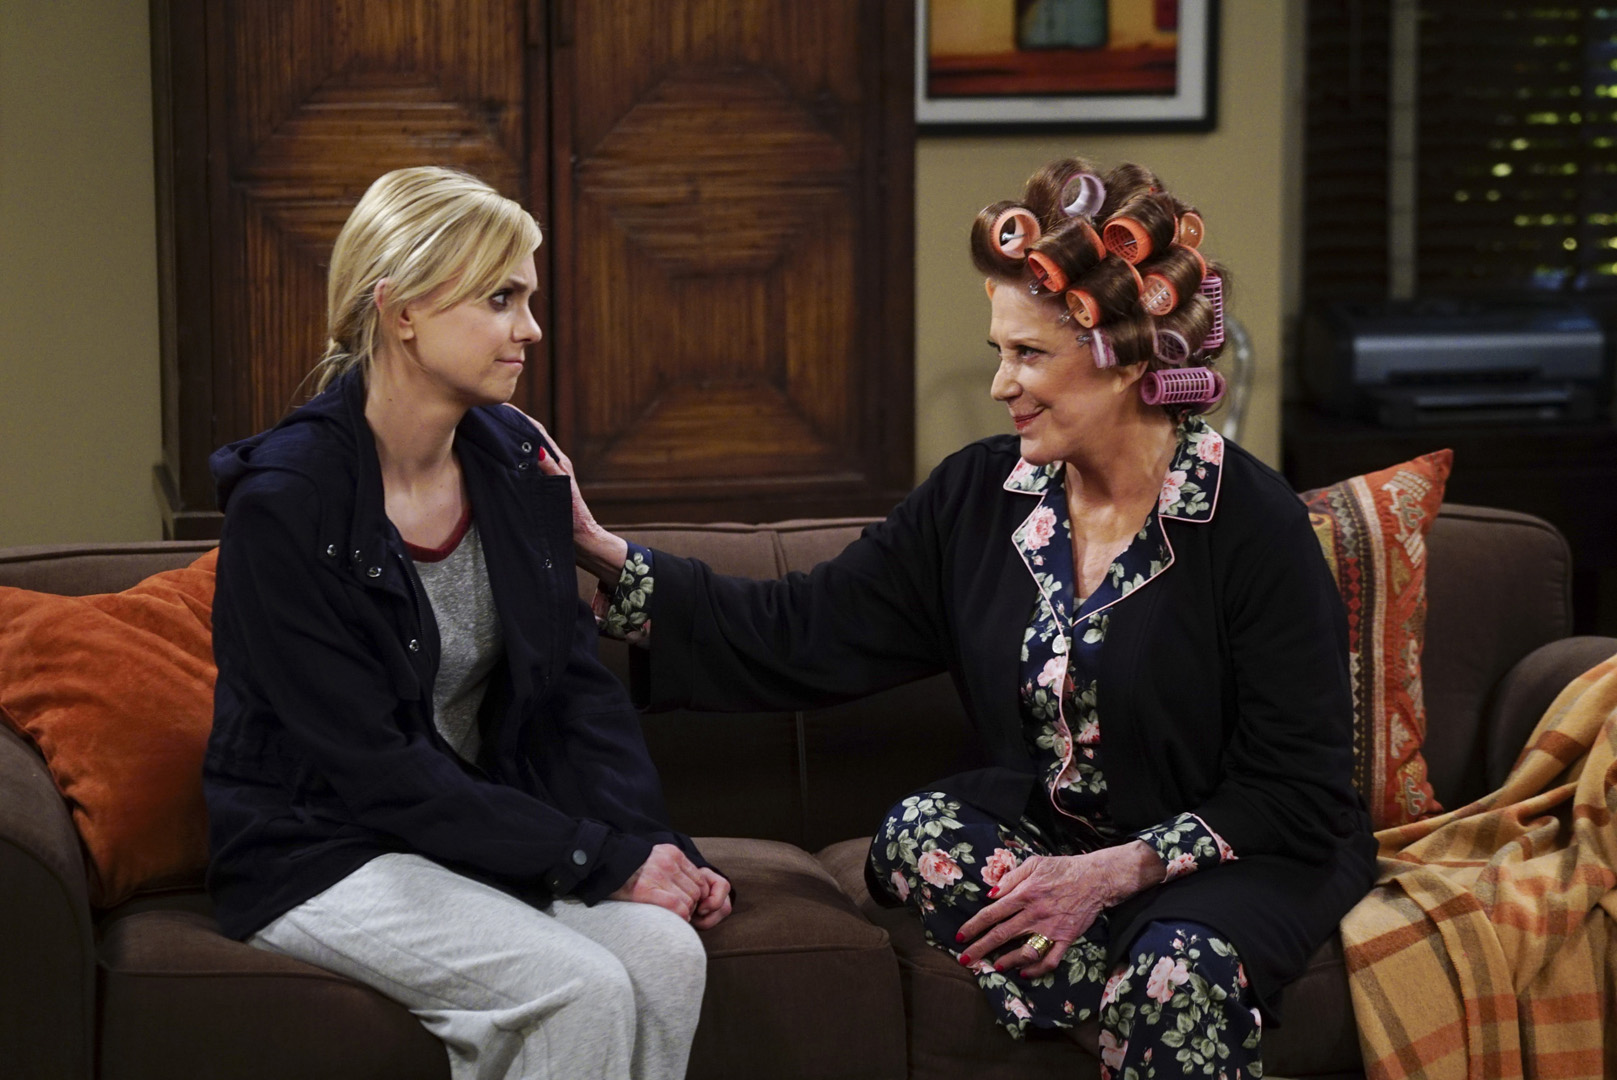 Christy and Phyllis have a heart-to-heart.